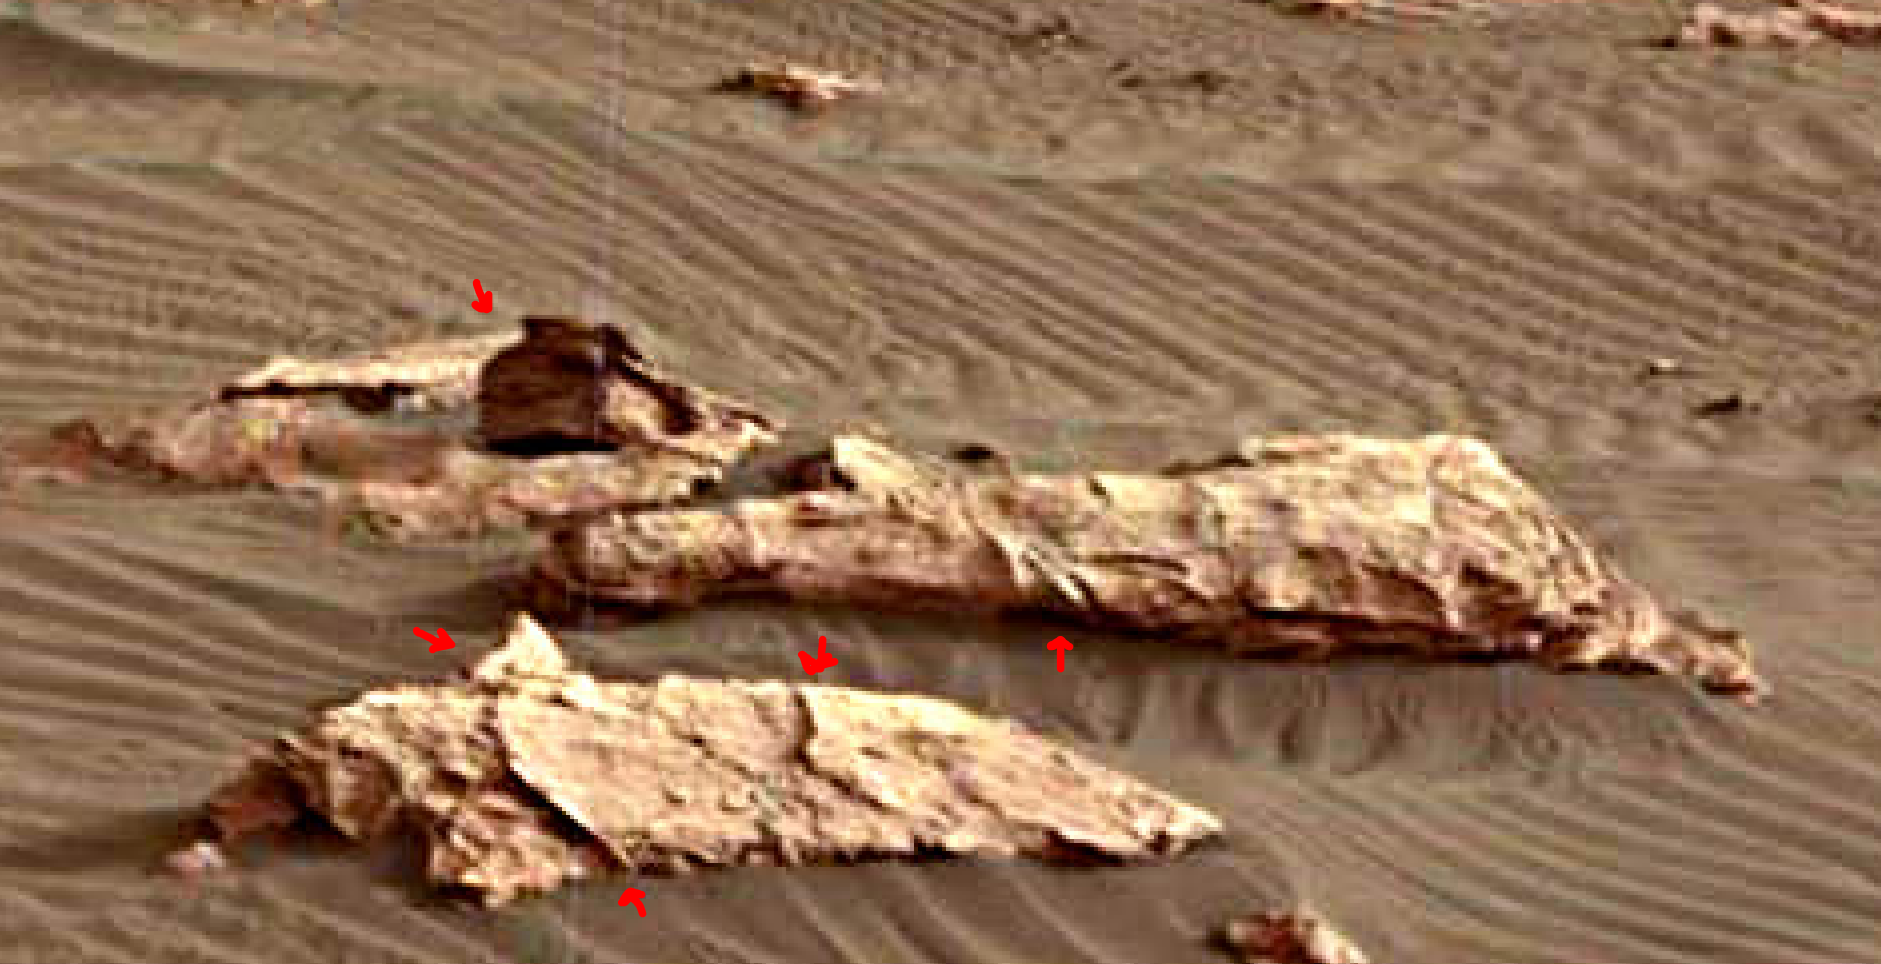 mars-sol-1512-anomaly-artifacts-11-was-life-on-mars